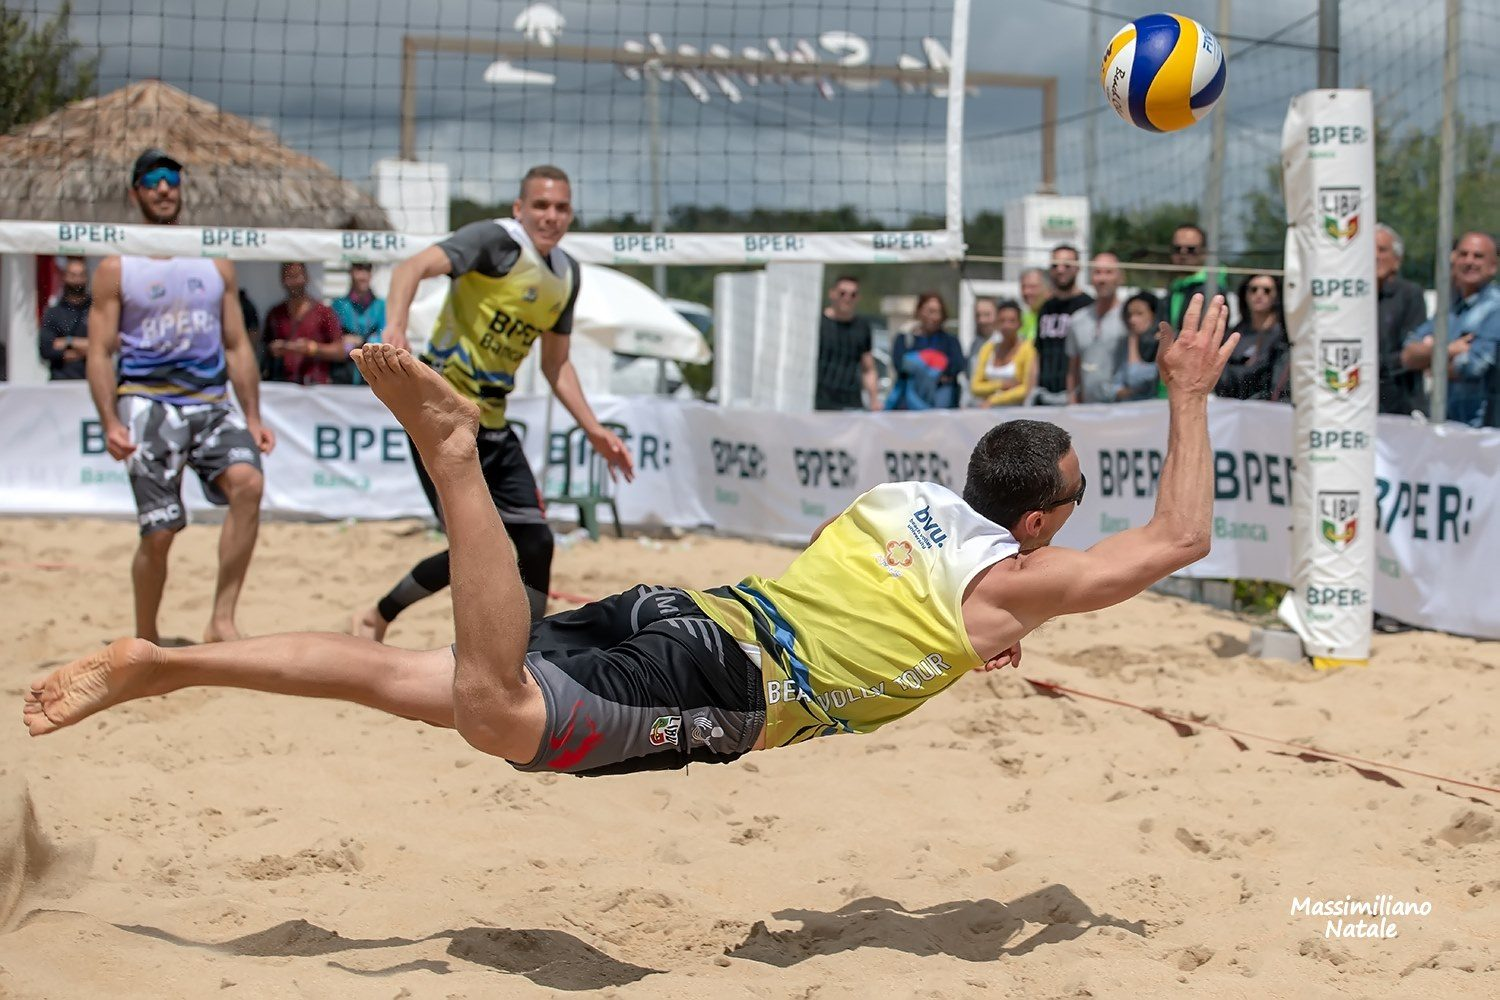 bper-beach-volley-tour-21.6.2019.jpg